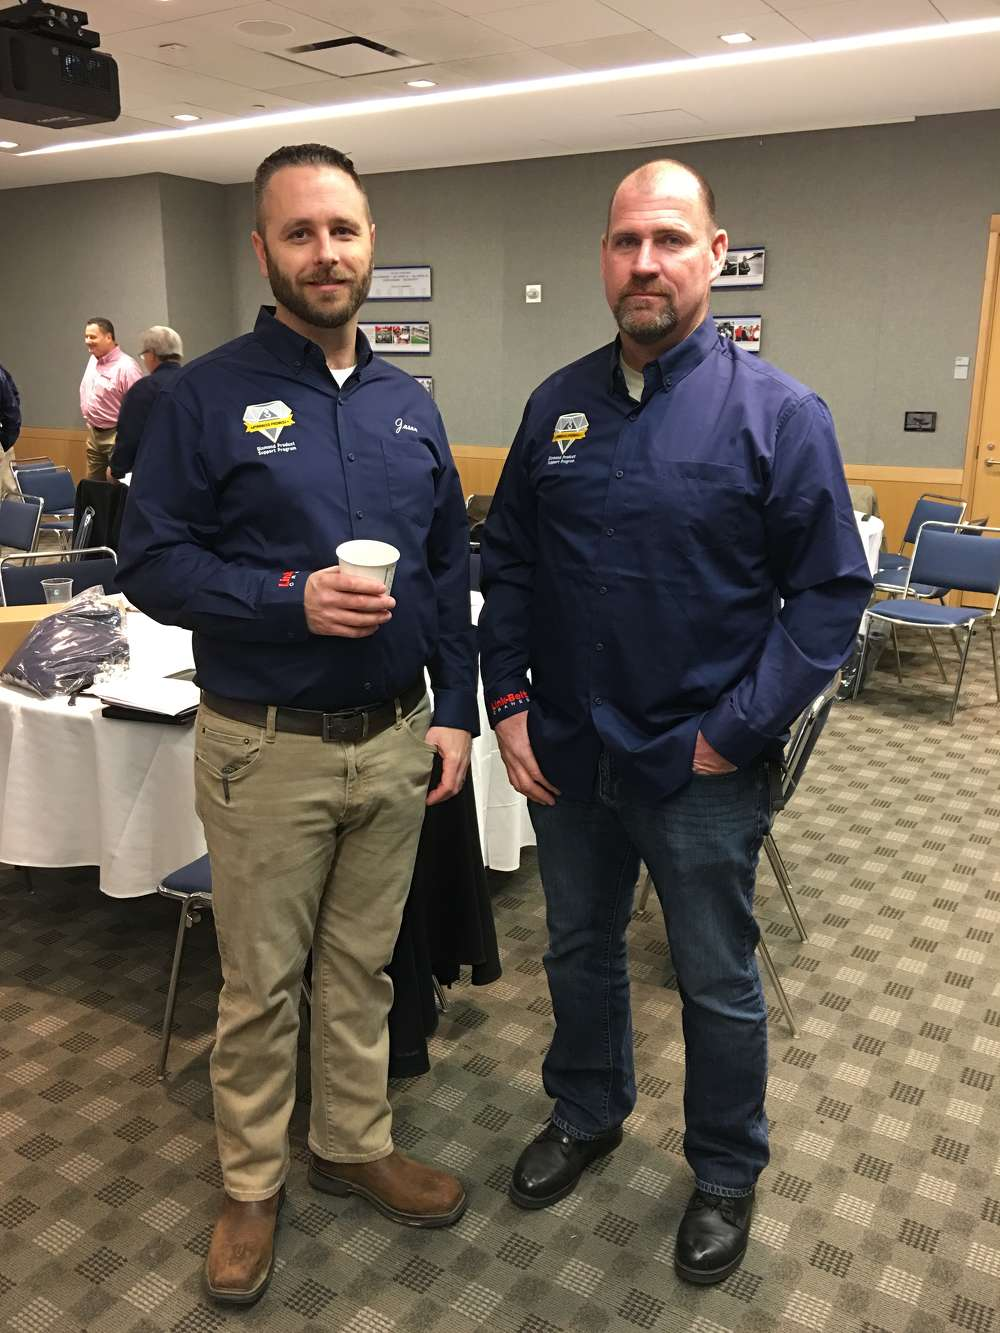 Jason Pearsall (L) of Pinnacle Cranes and George Walker of Southern Industrial Constructors attend the event.